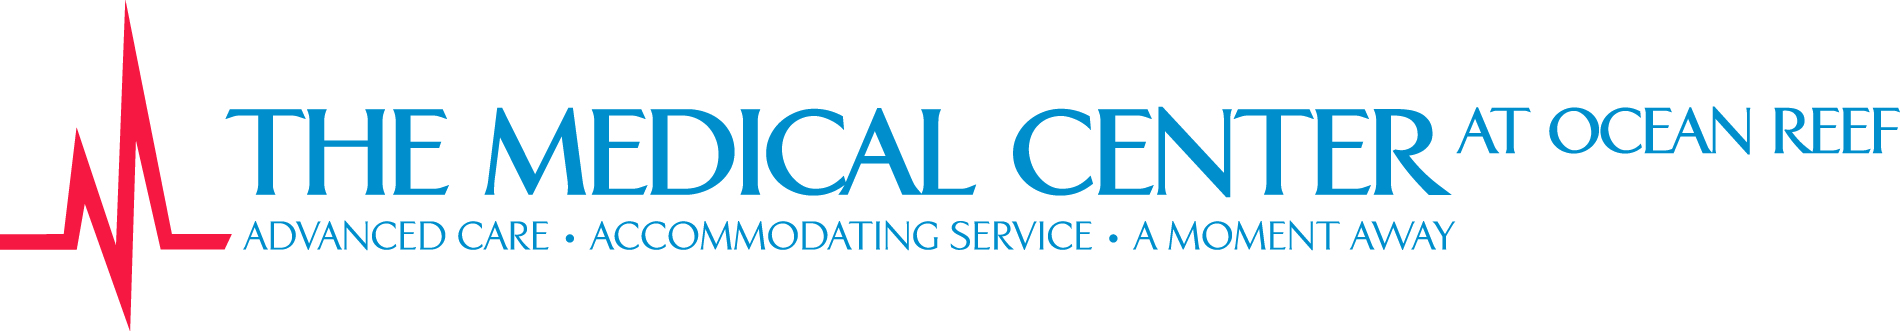 The Medical Center at Ocean Reef Logo